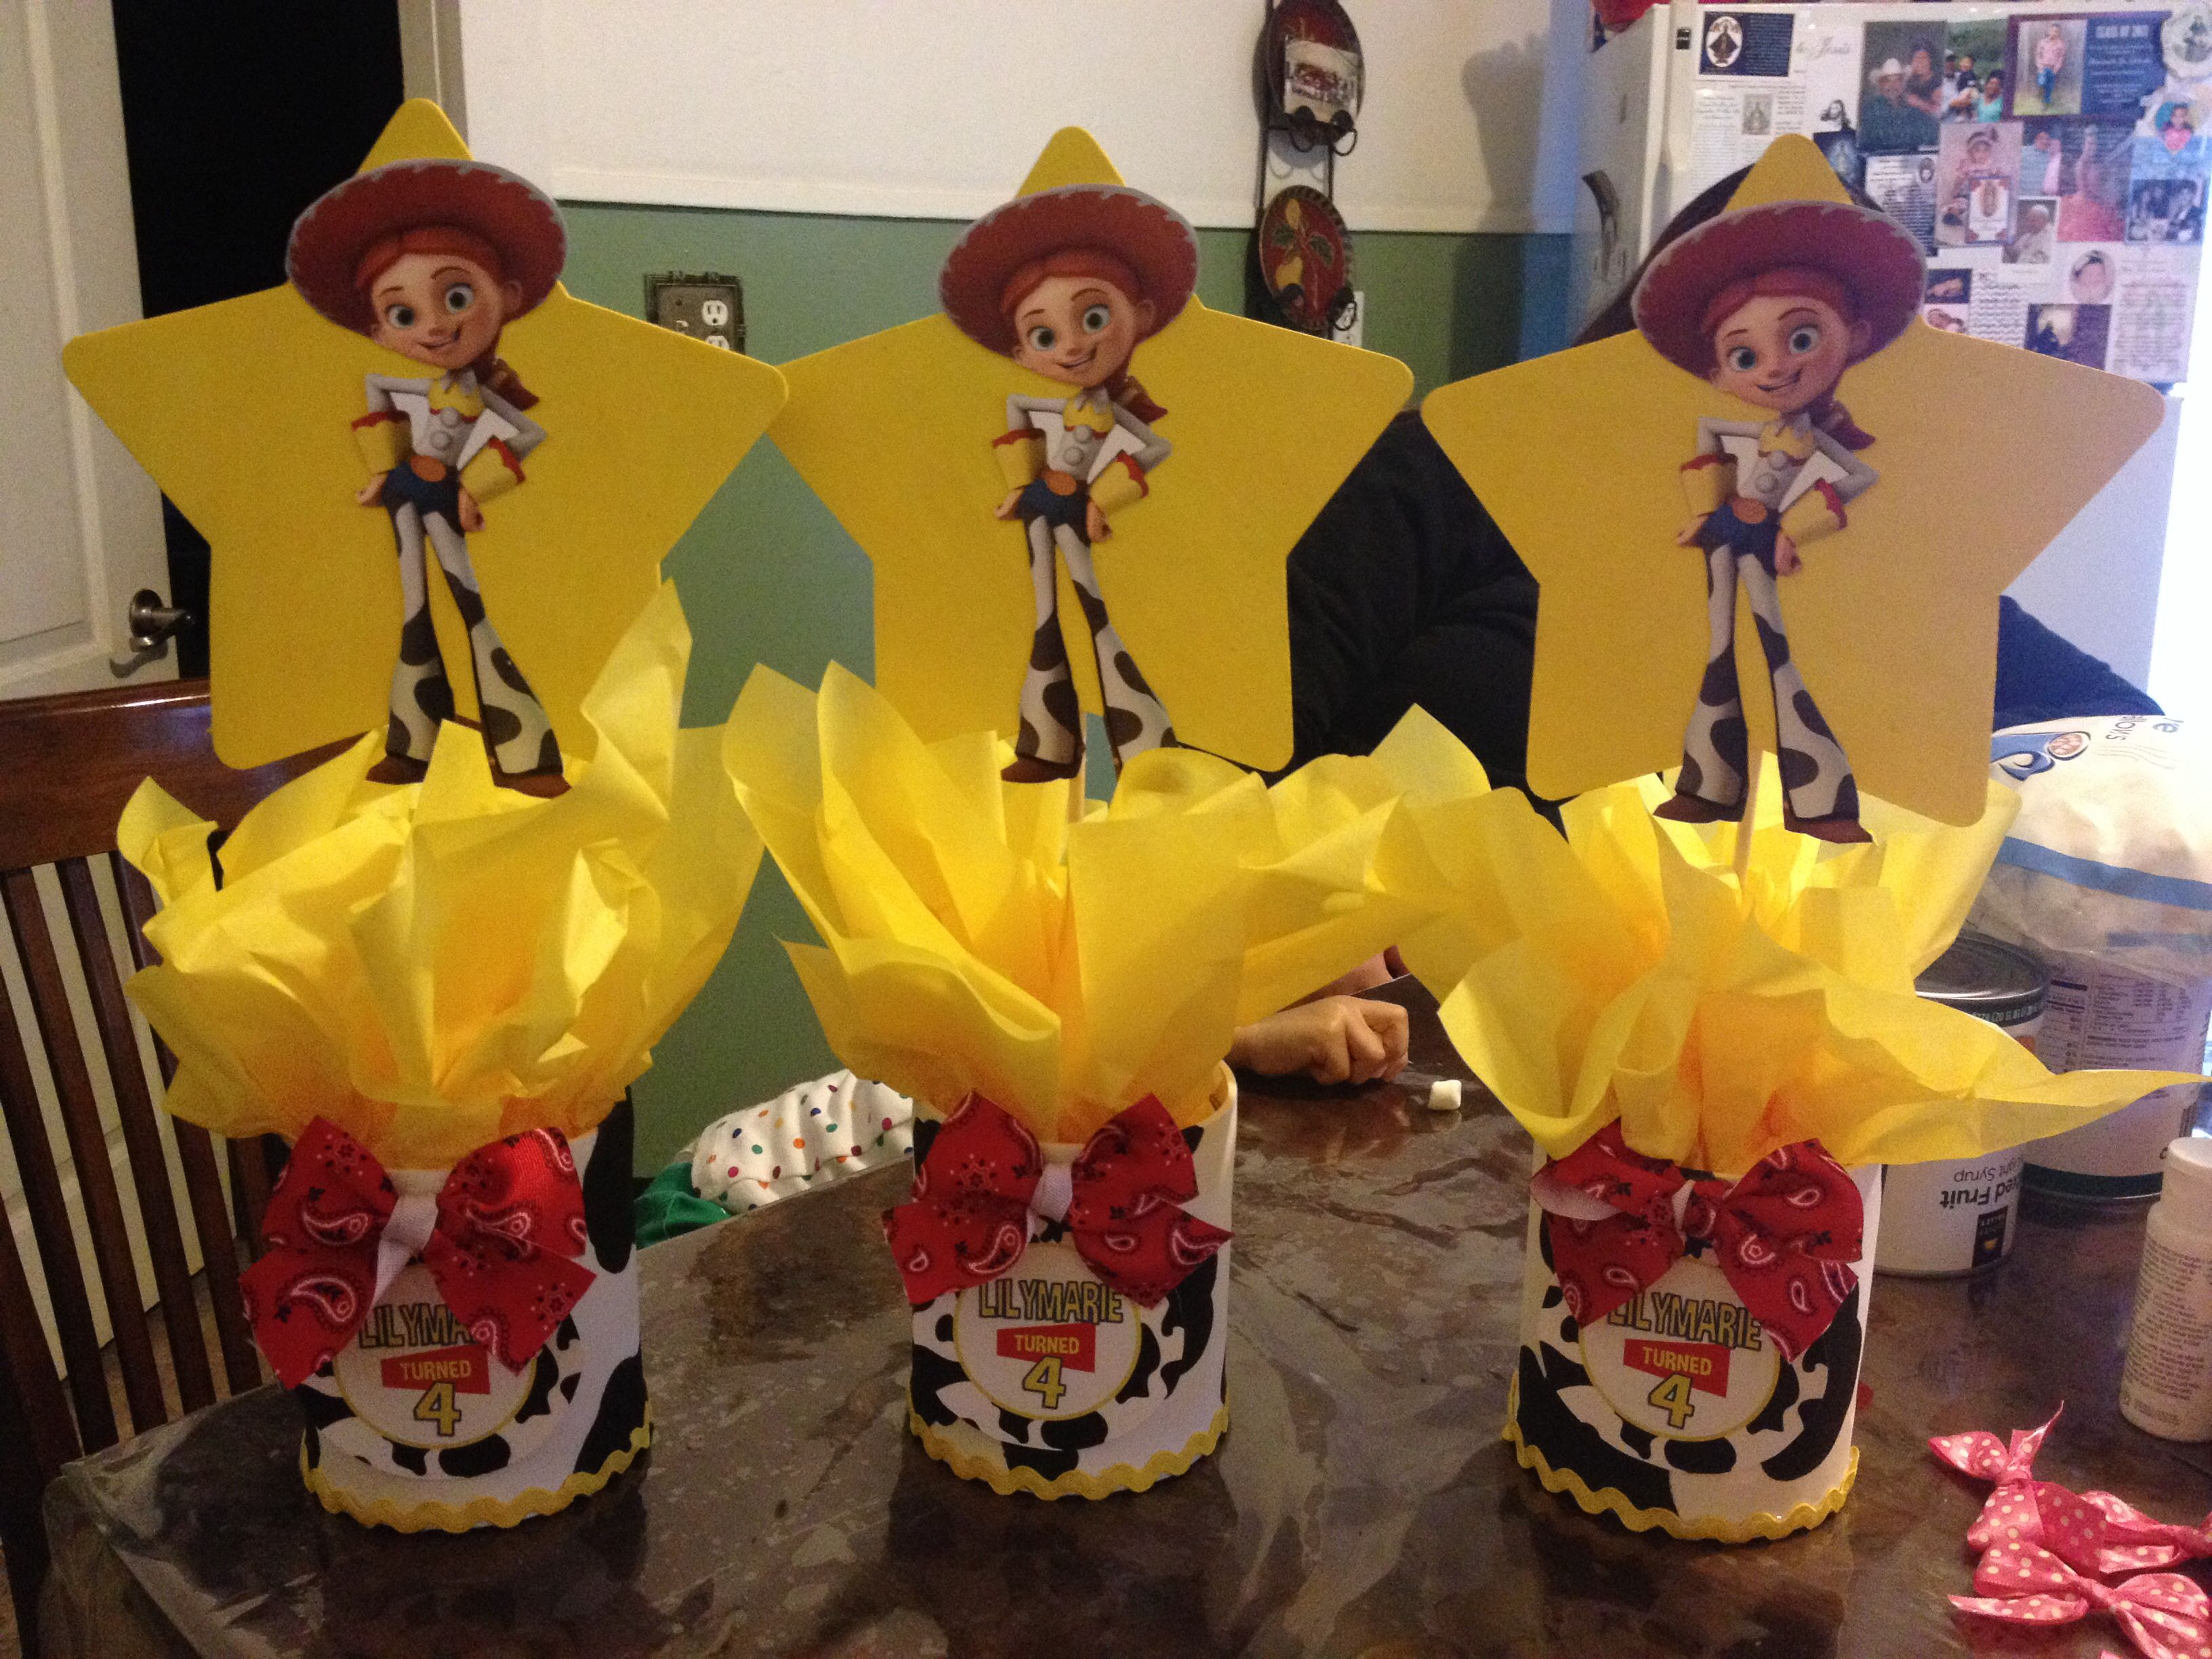 Toy story party ideas birthday in a box - Toy Story Jessie Centerpieces